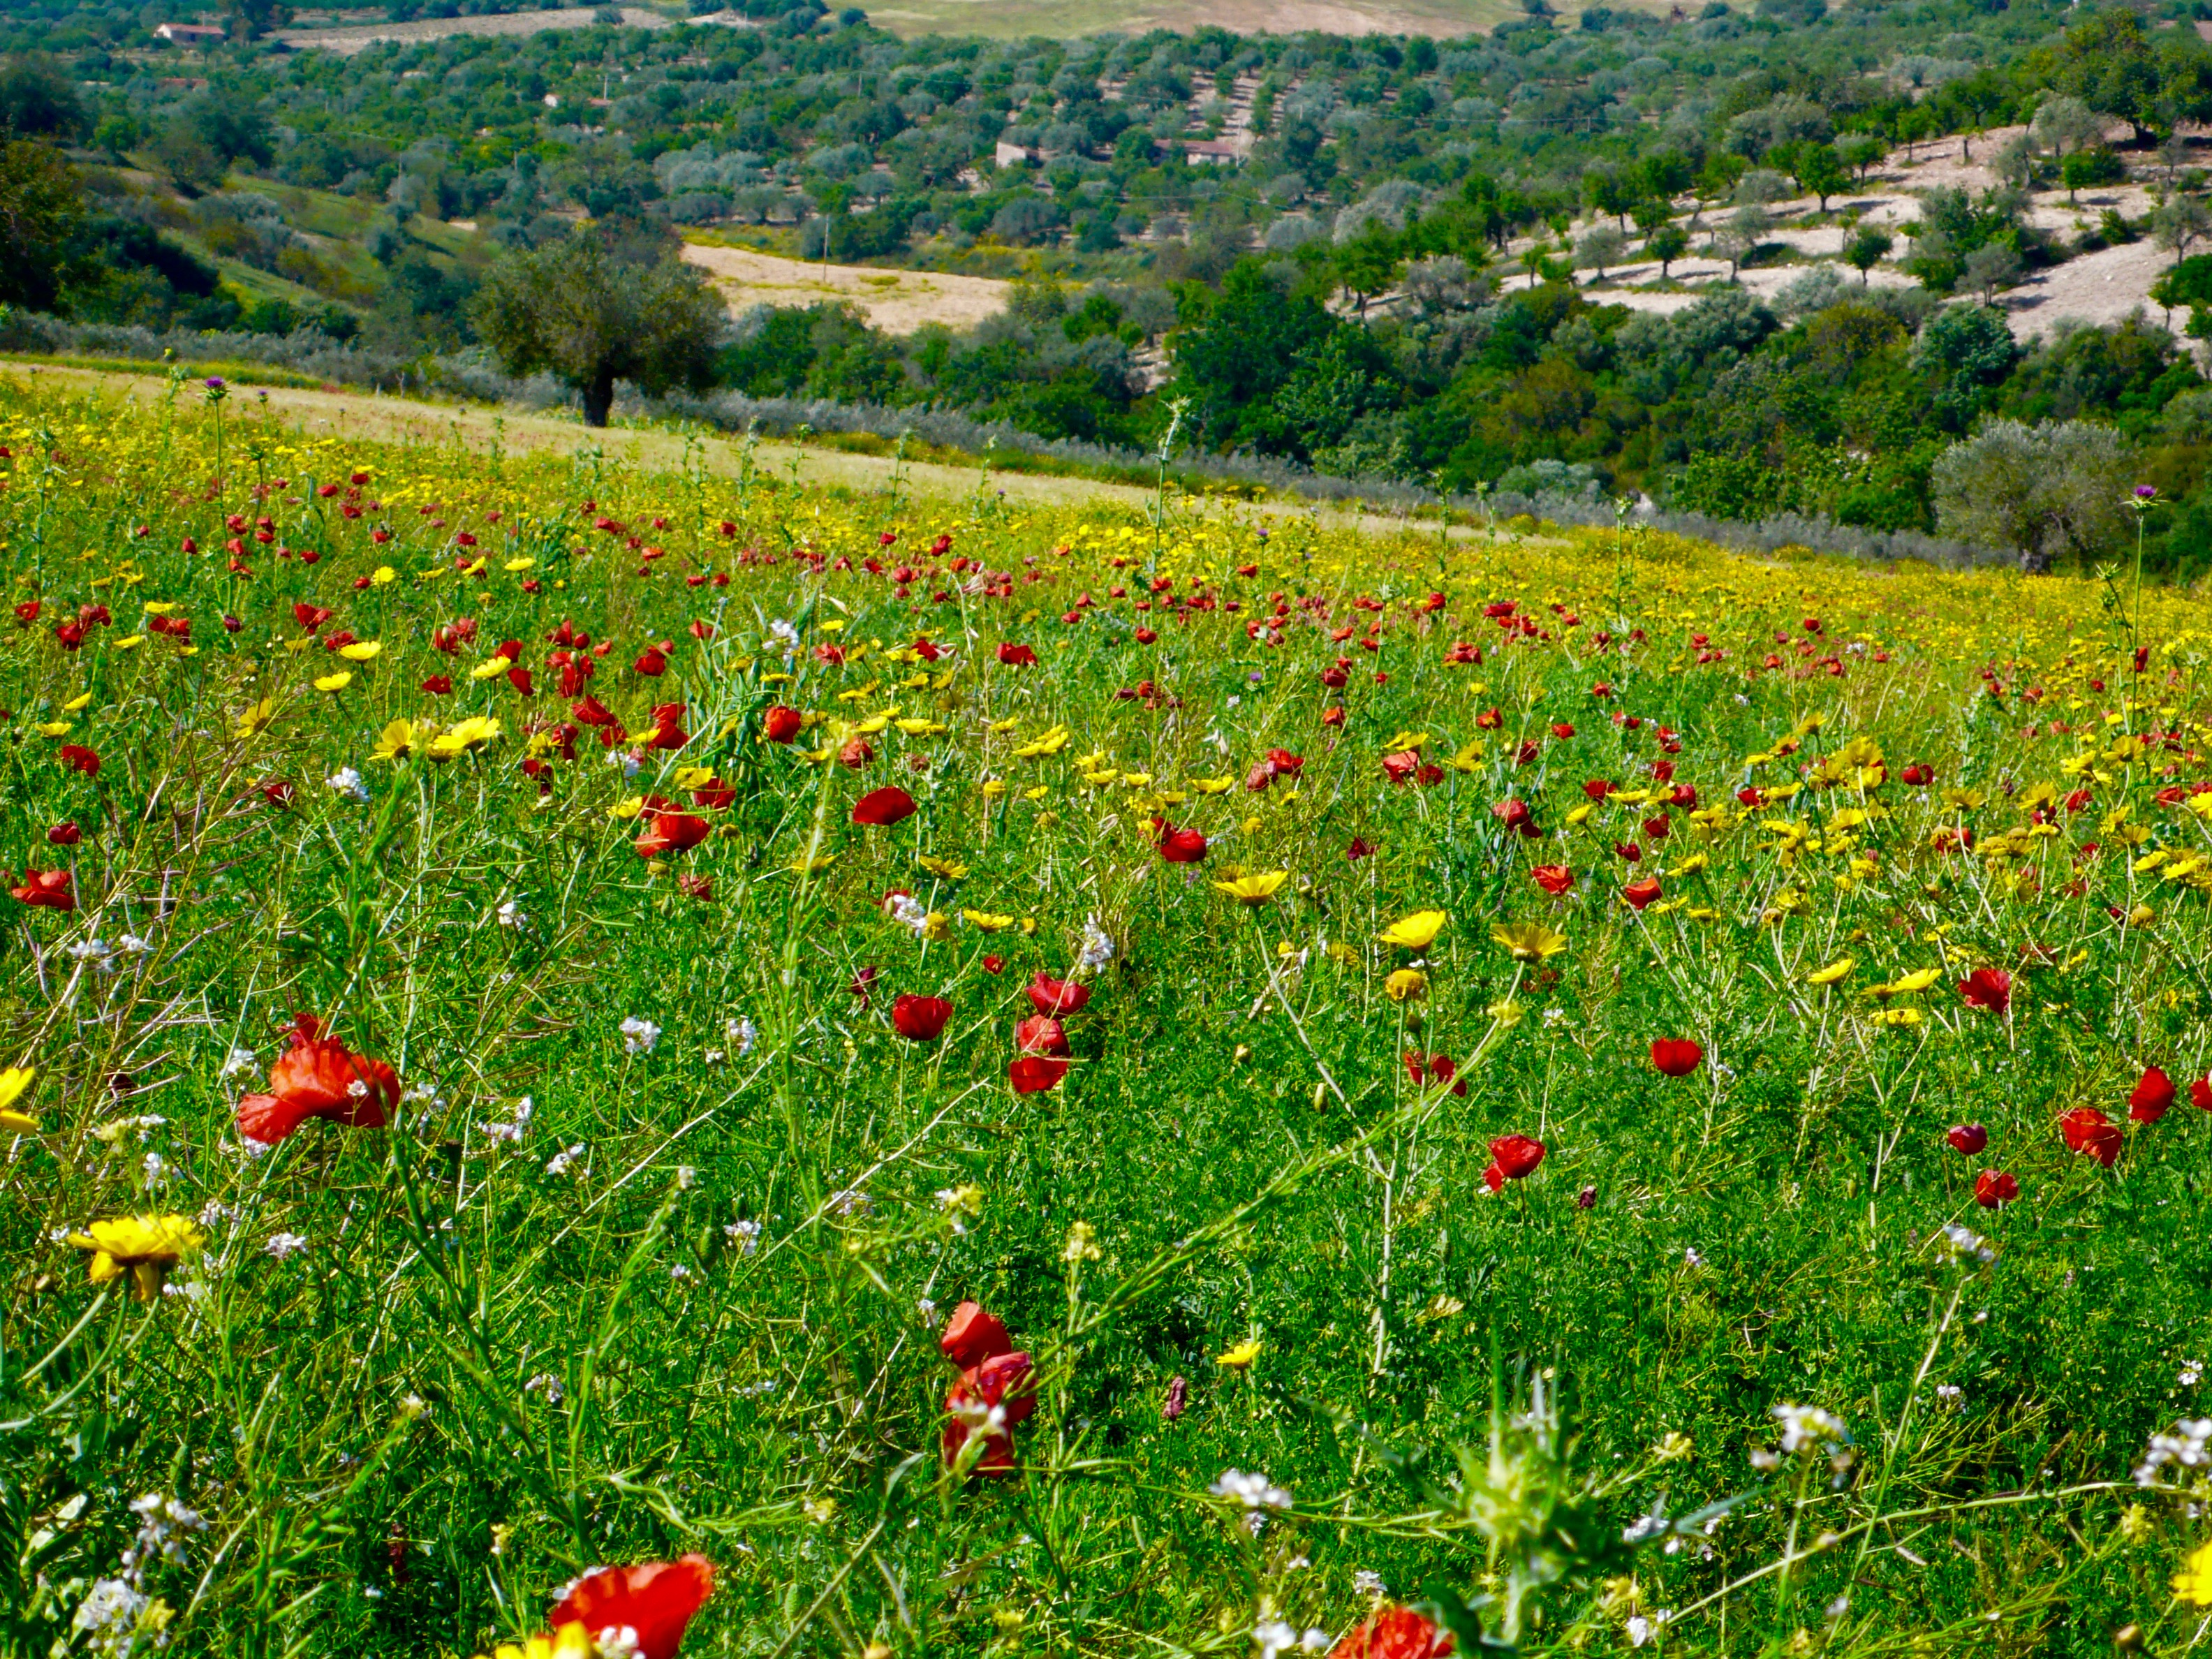 On the way to Modica, I finally got the shot I wanted: fields of wildflowers at their peak of beauty.  Red poppies standout against yellow flowers